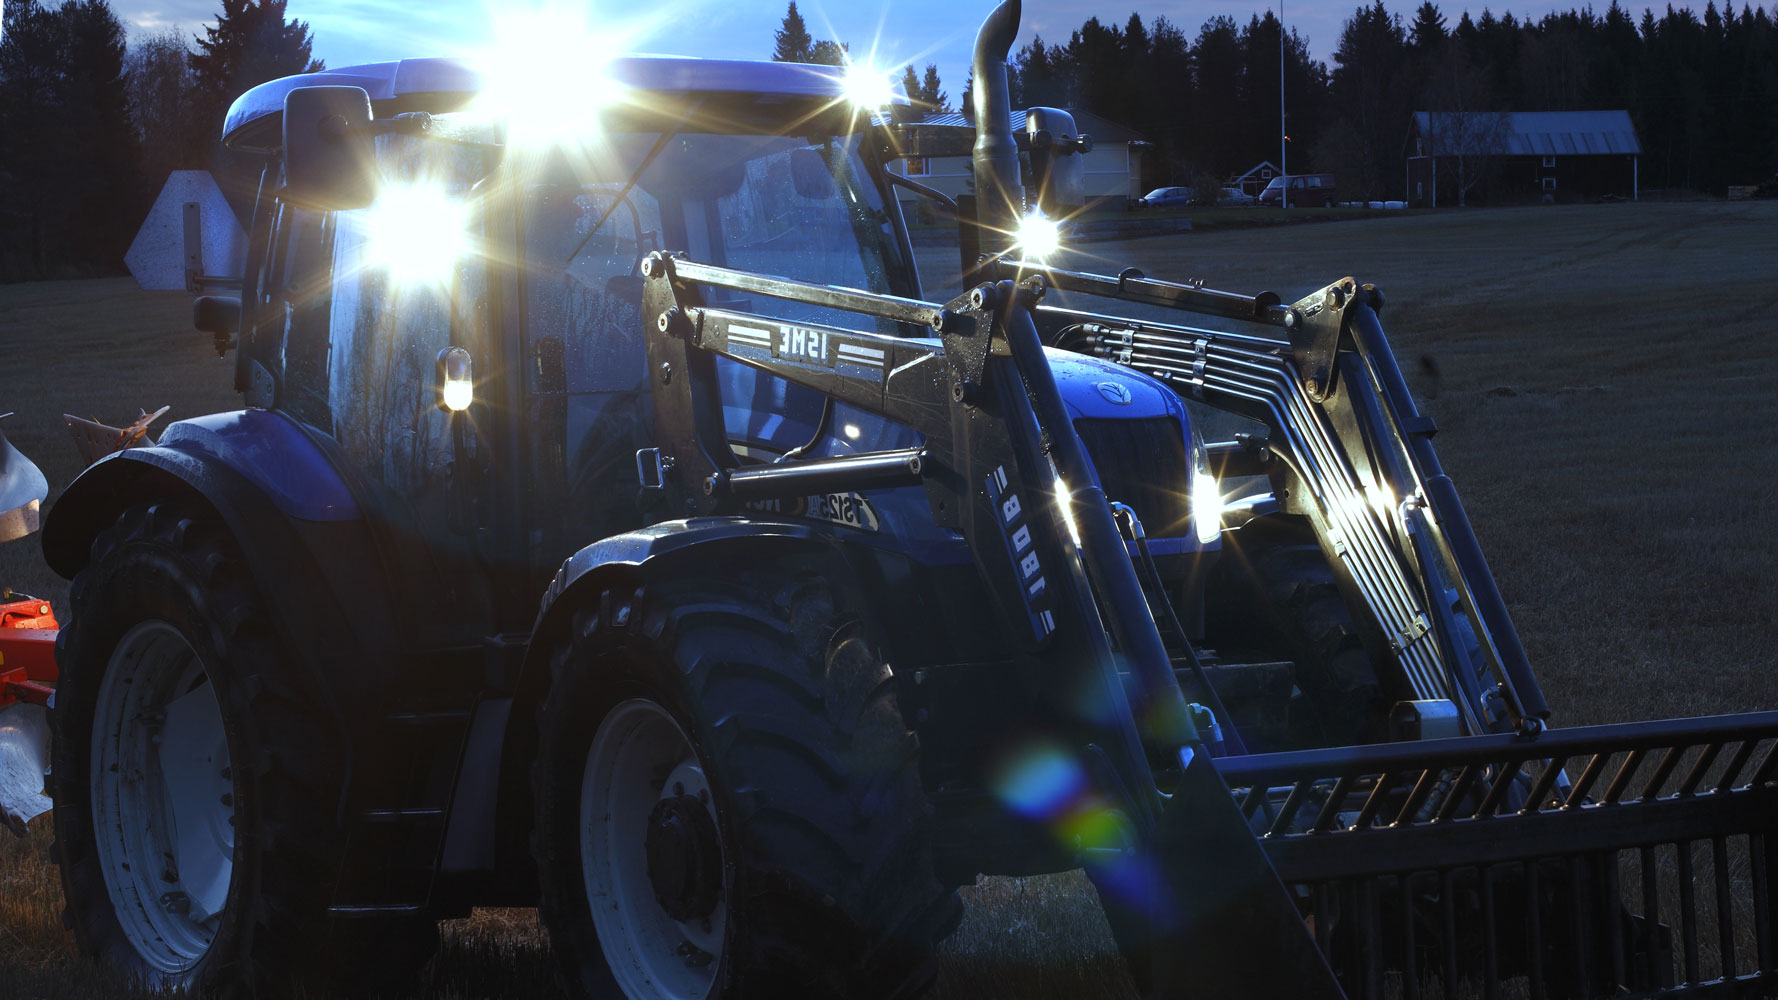 Nordic Lights LED tractor lights mounted on blue tractor working on field